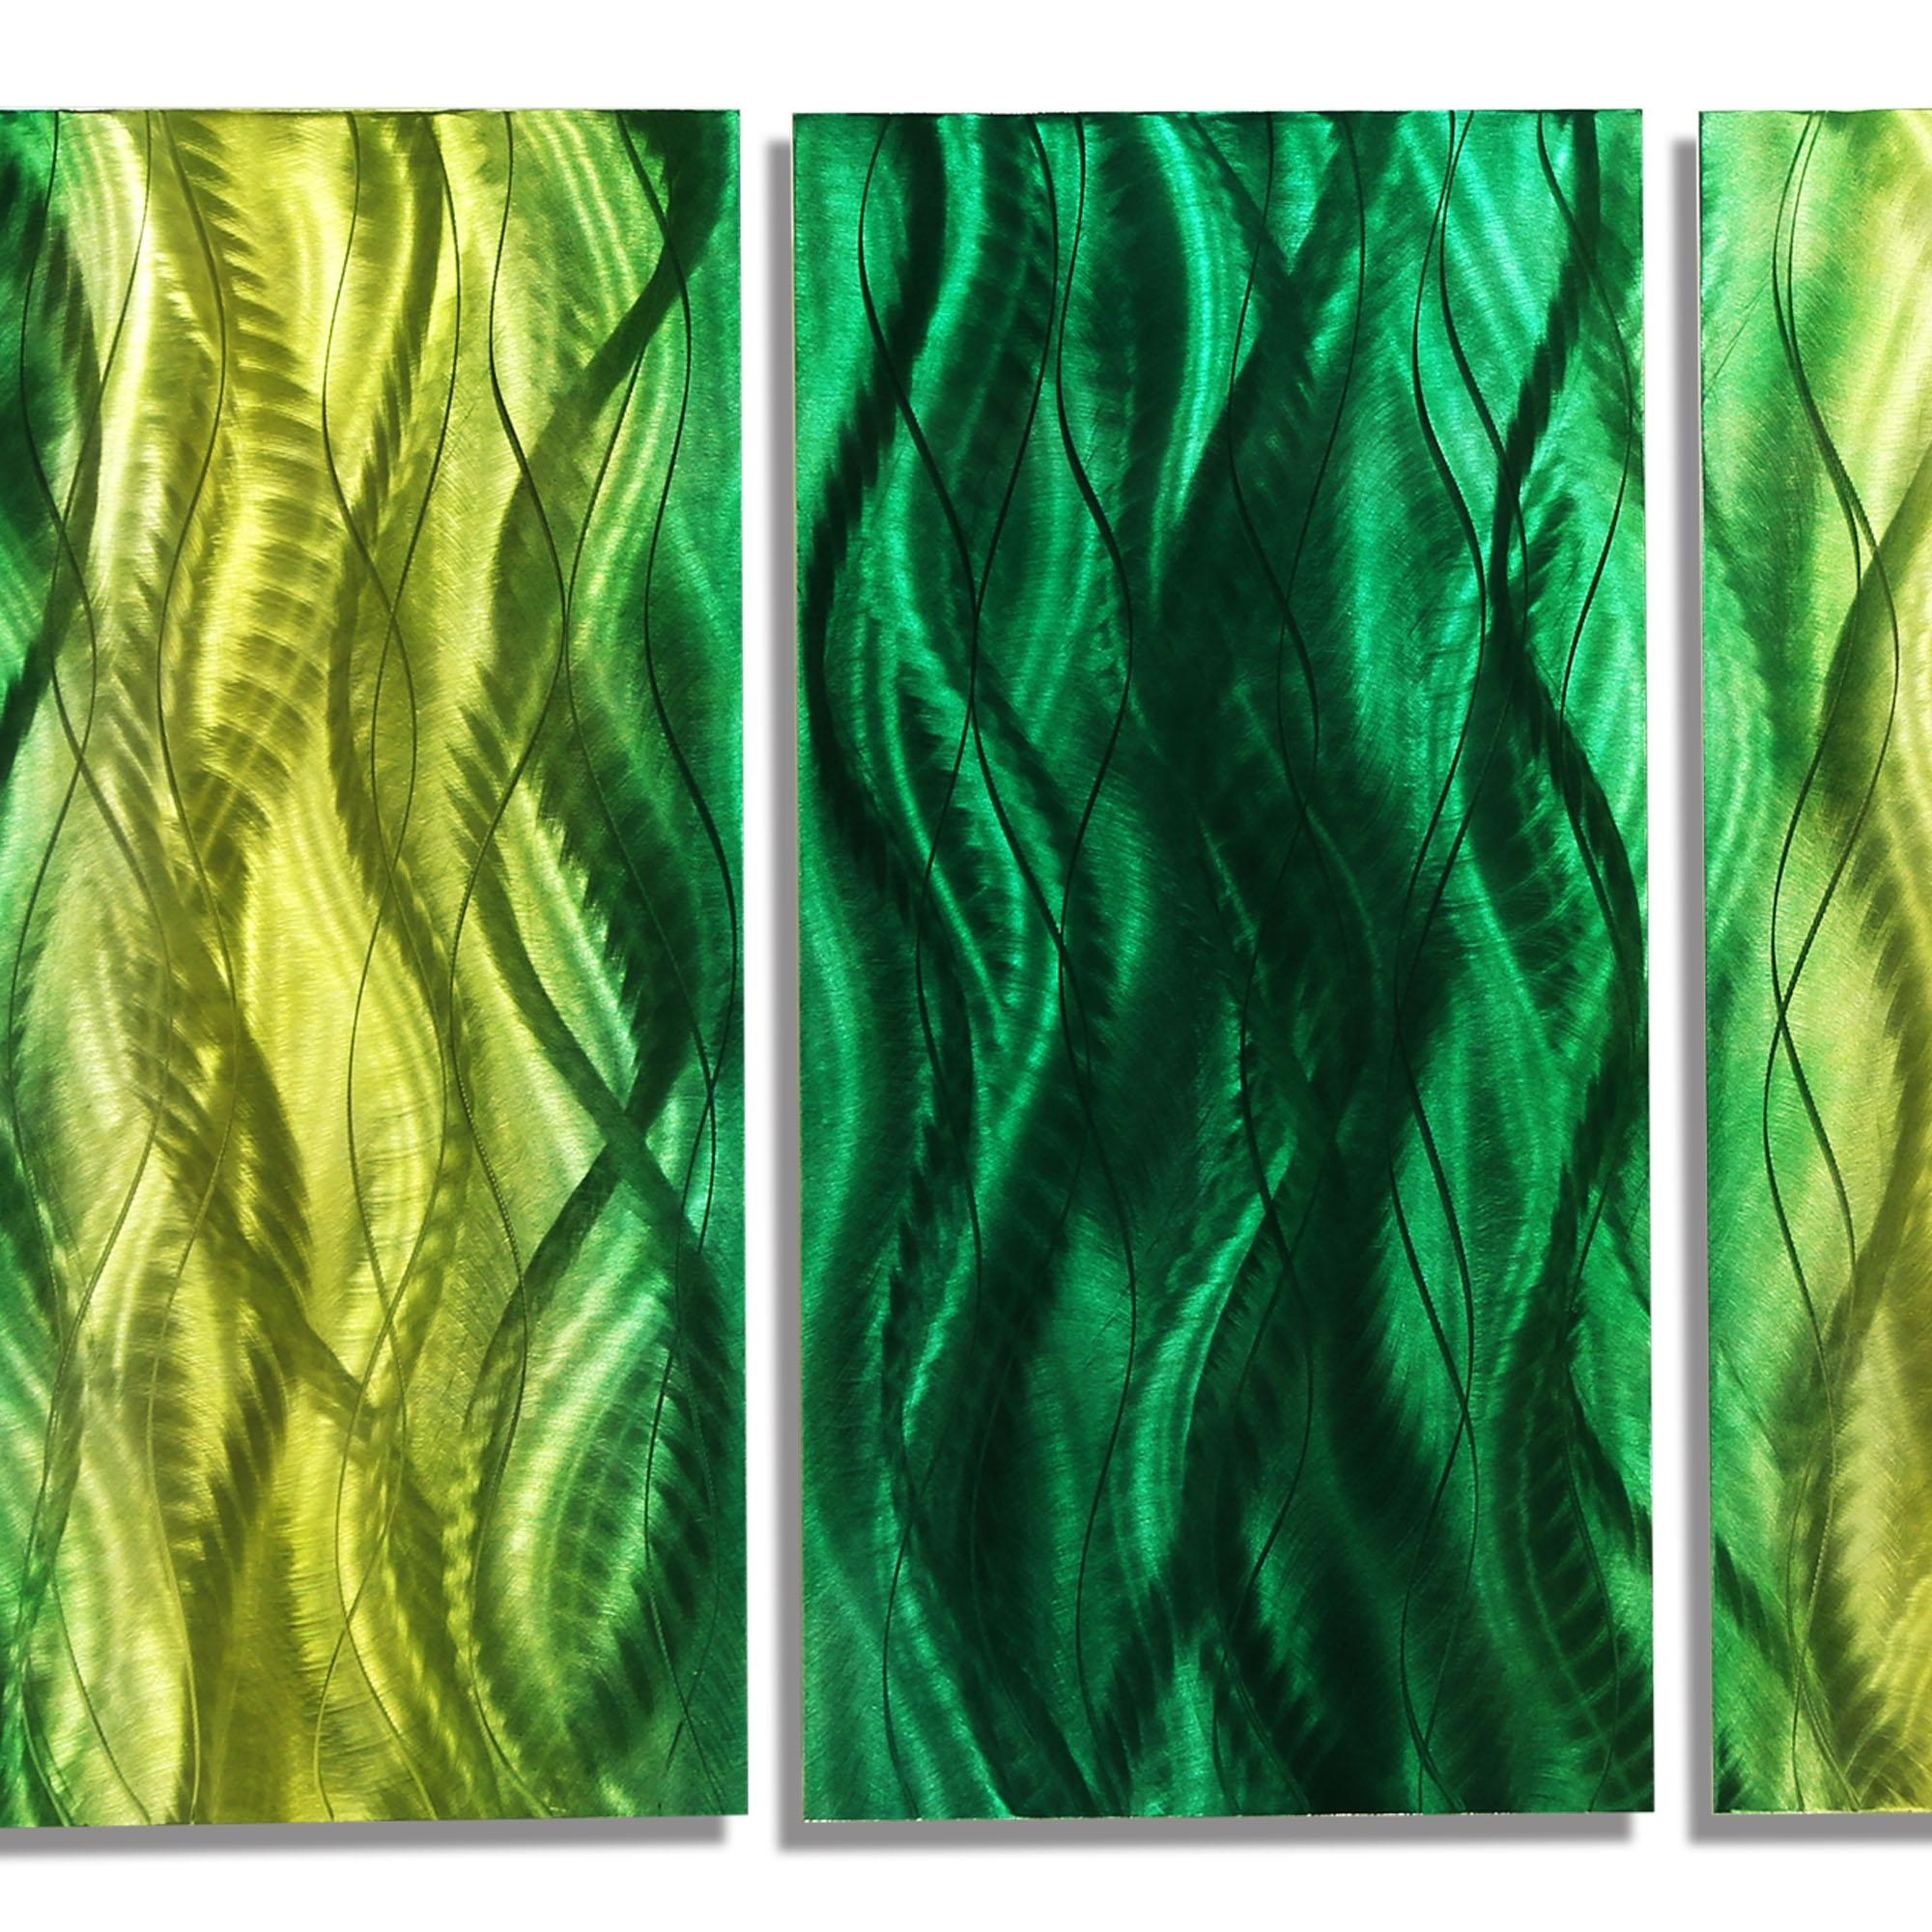 Bliss – Fusions Of Green Contemporary Multi Panel Metal Wall Art Pertaining To Yellow And Green Wall Art (Image 10 of 20)